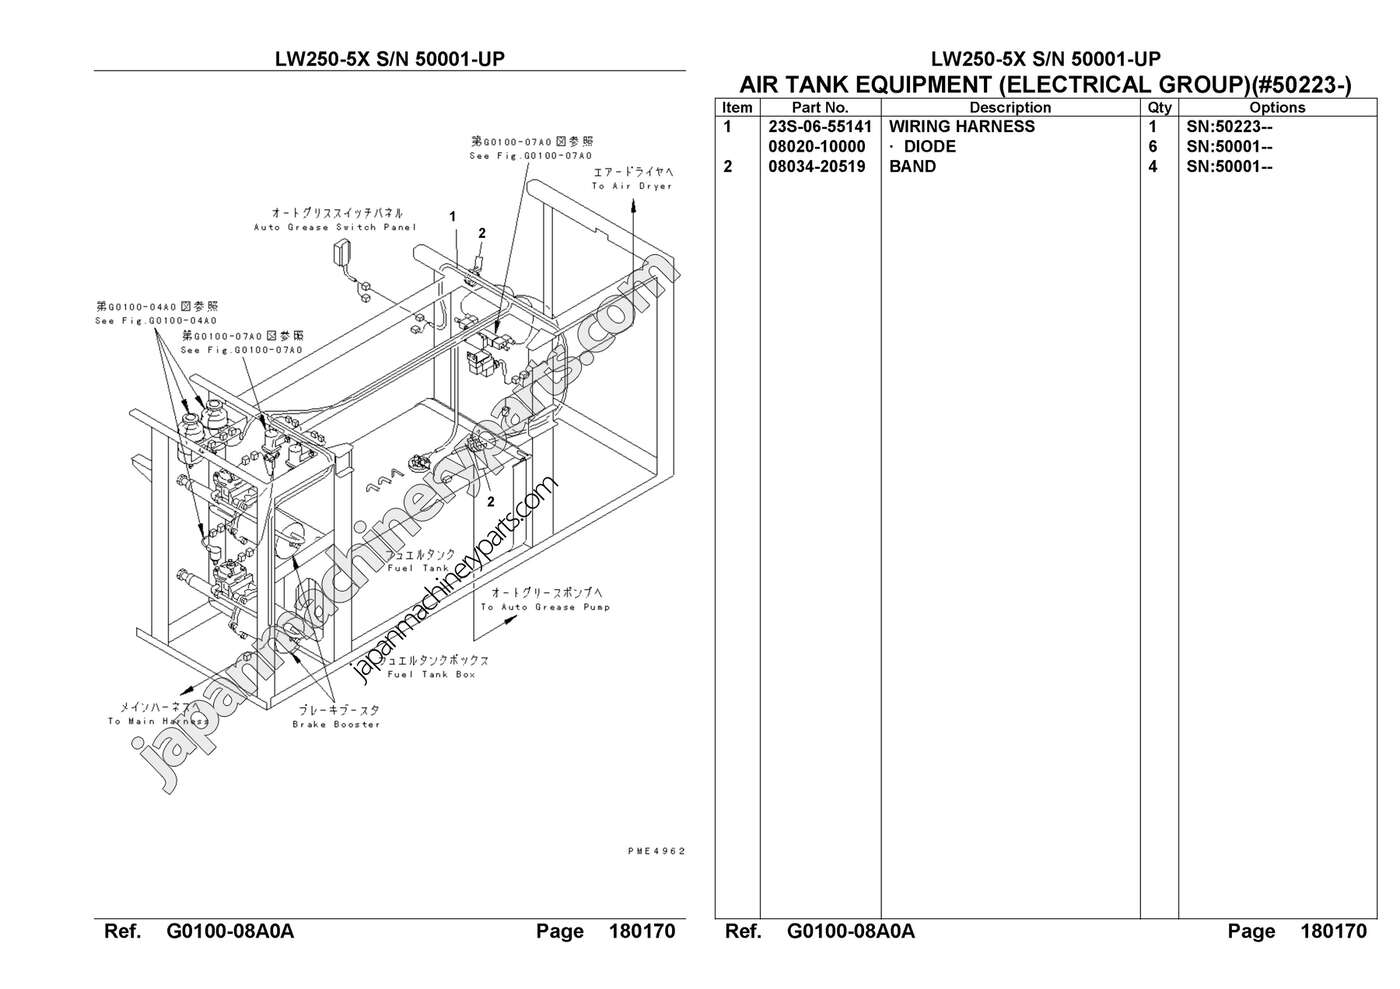 mustang 2054 skid steer wiring diagram - wiring diagram ... bobcat s300 skid steer electrical diagrams mustang skid steer wiring diagrams 1982 #8